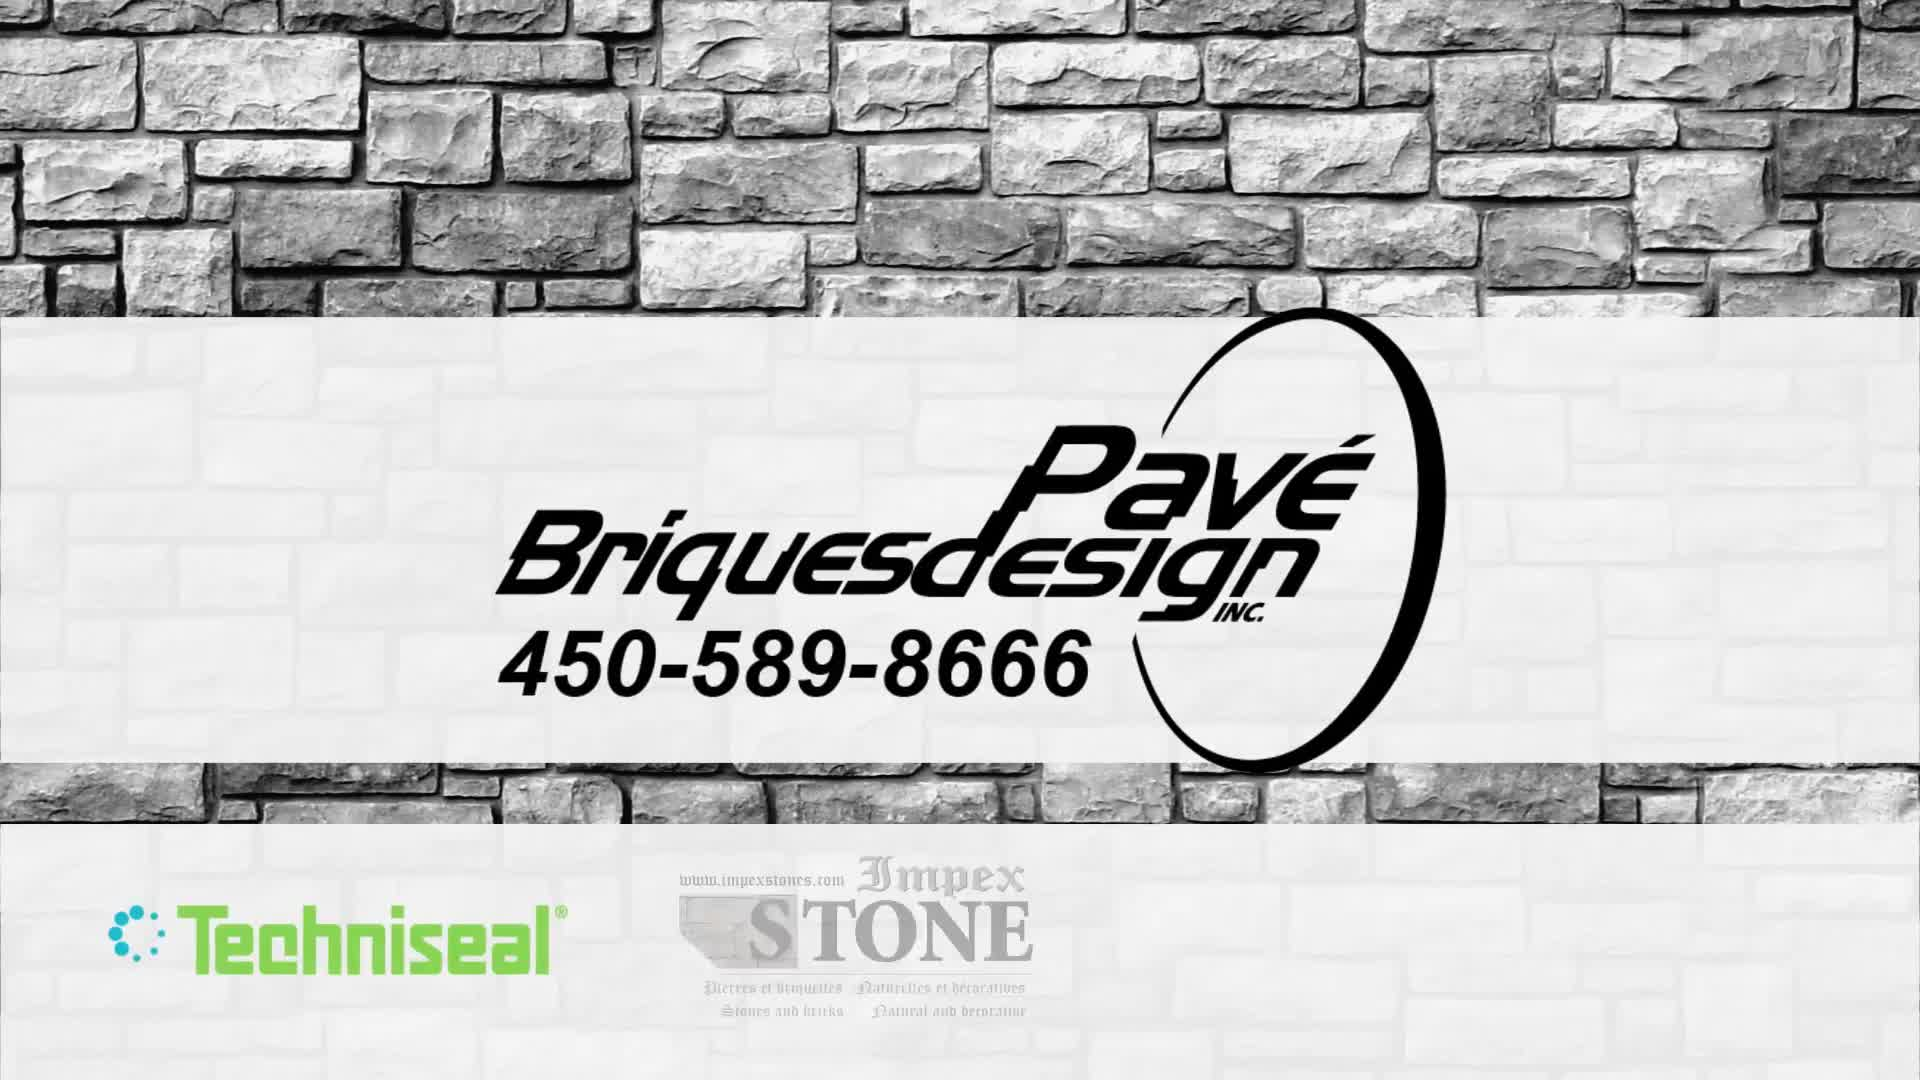 Pave Briques Design Inc - Video 1